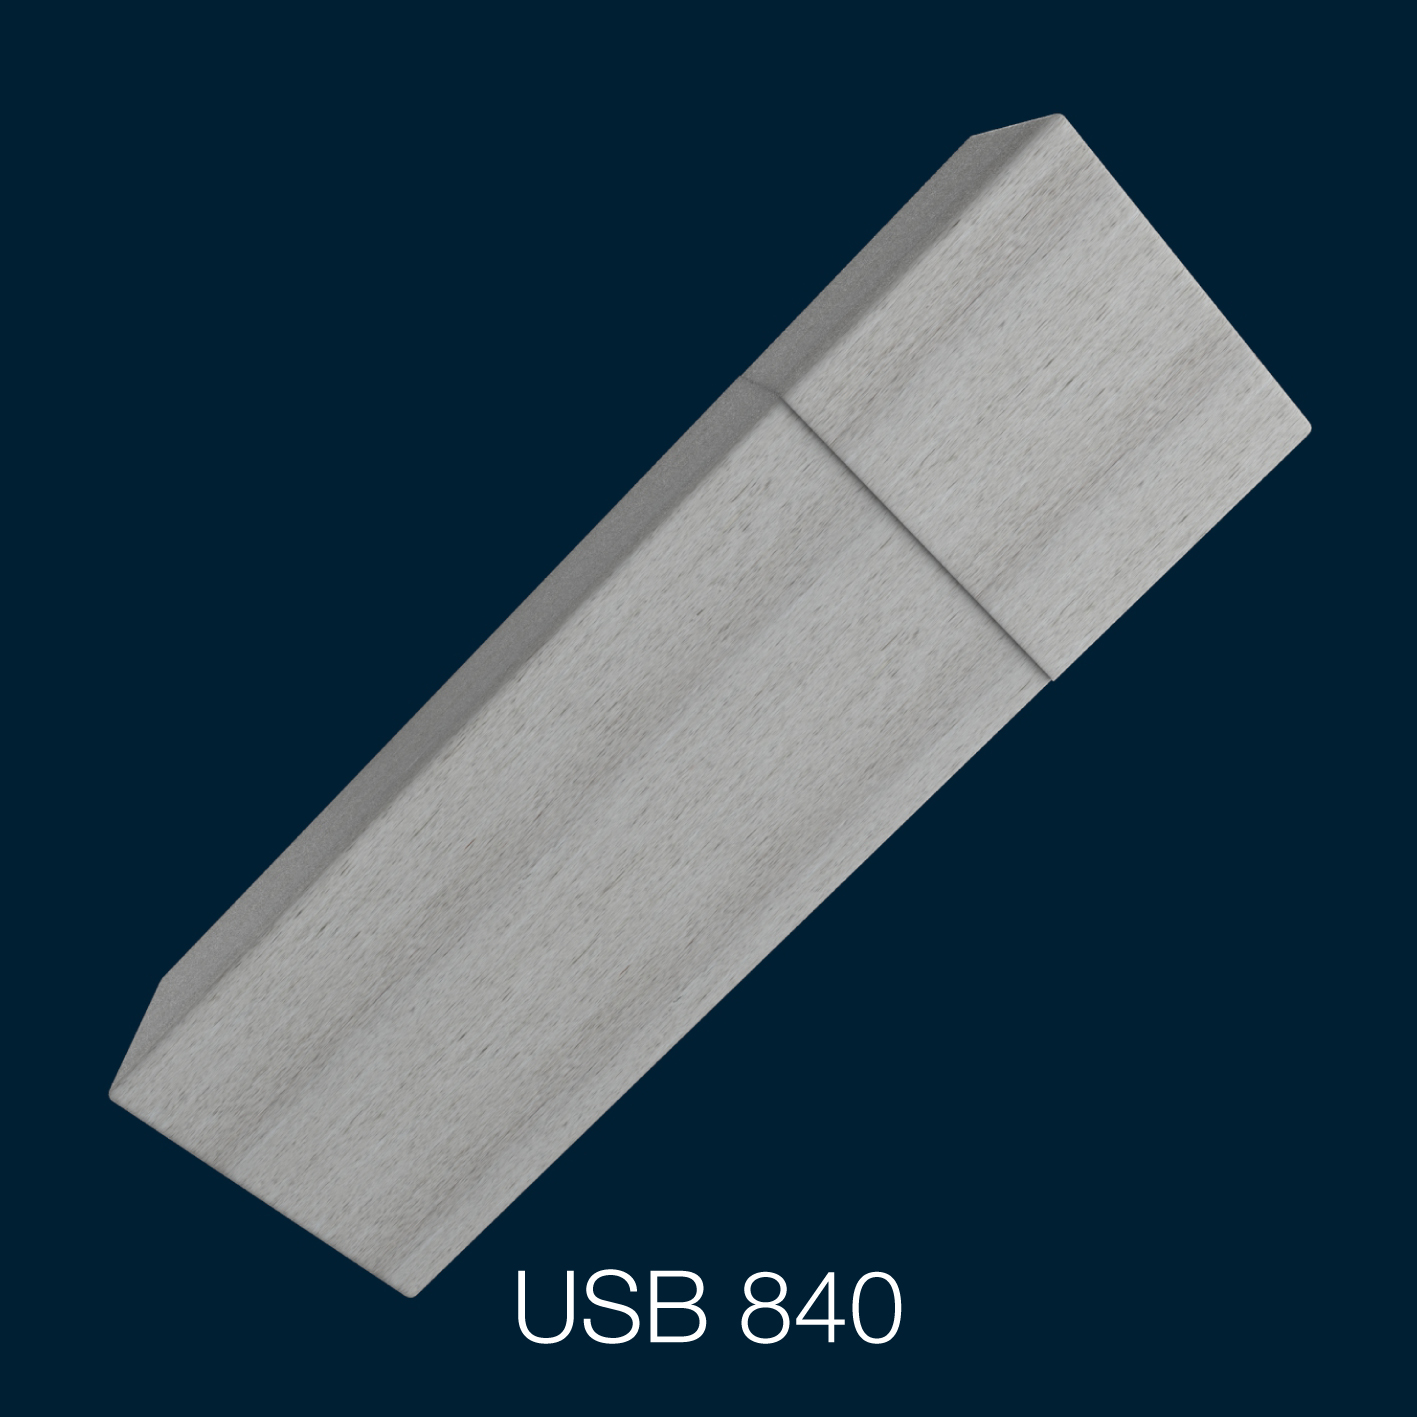 840-USB-cement-LABEL.jpg